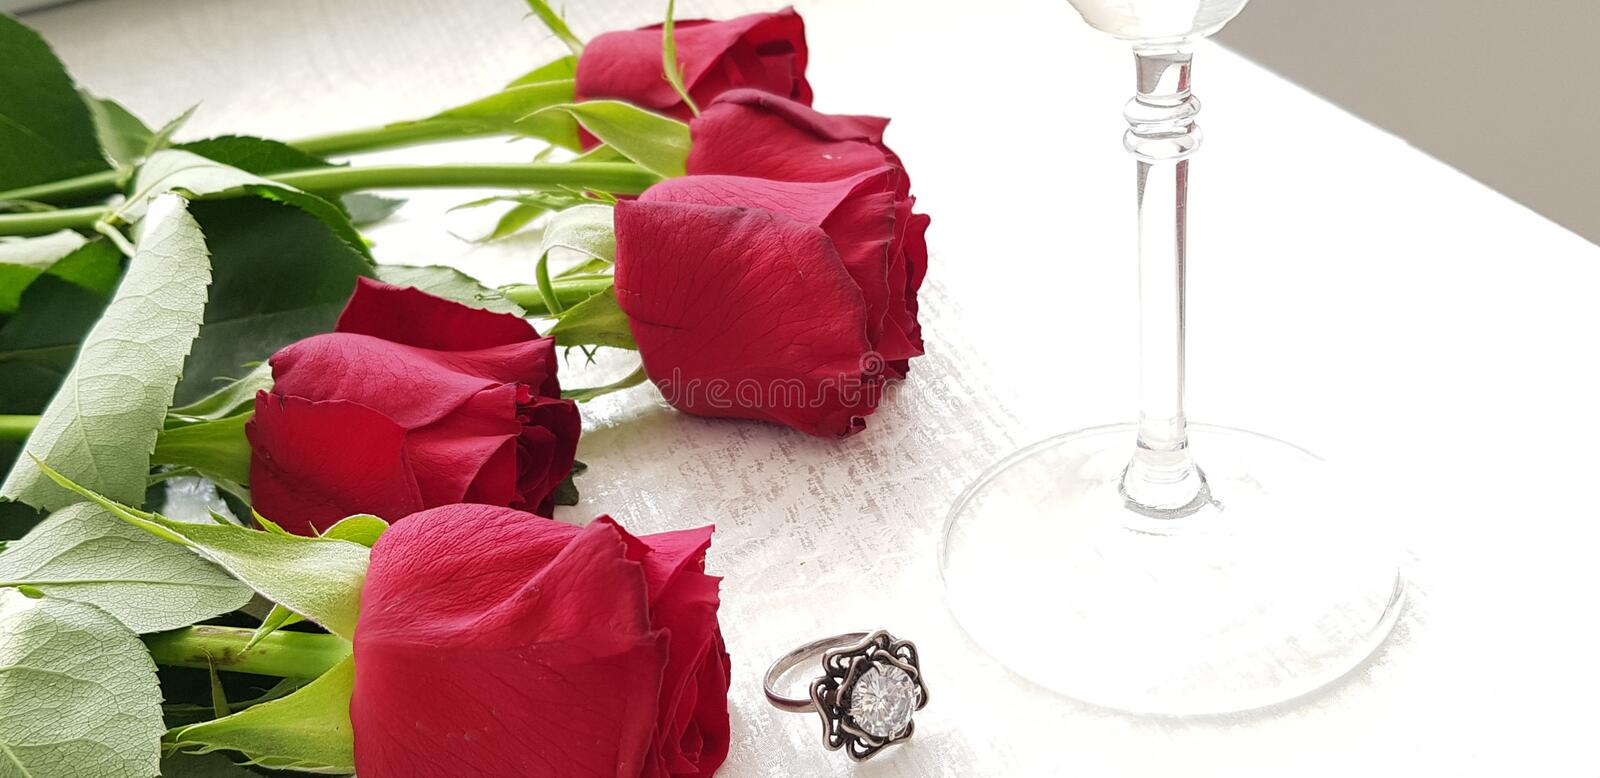 Red roses lay on white table near silver ring with big clear diamond stock images